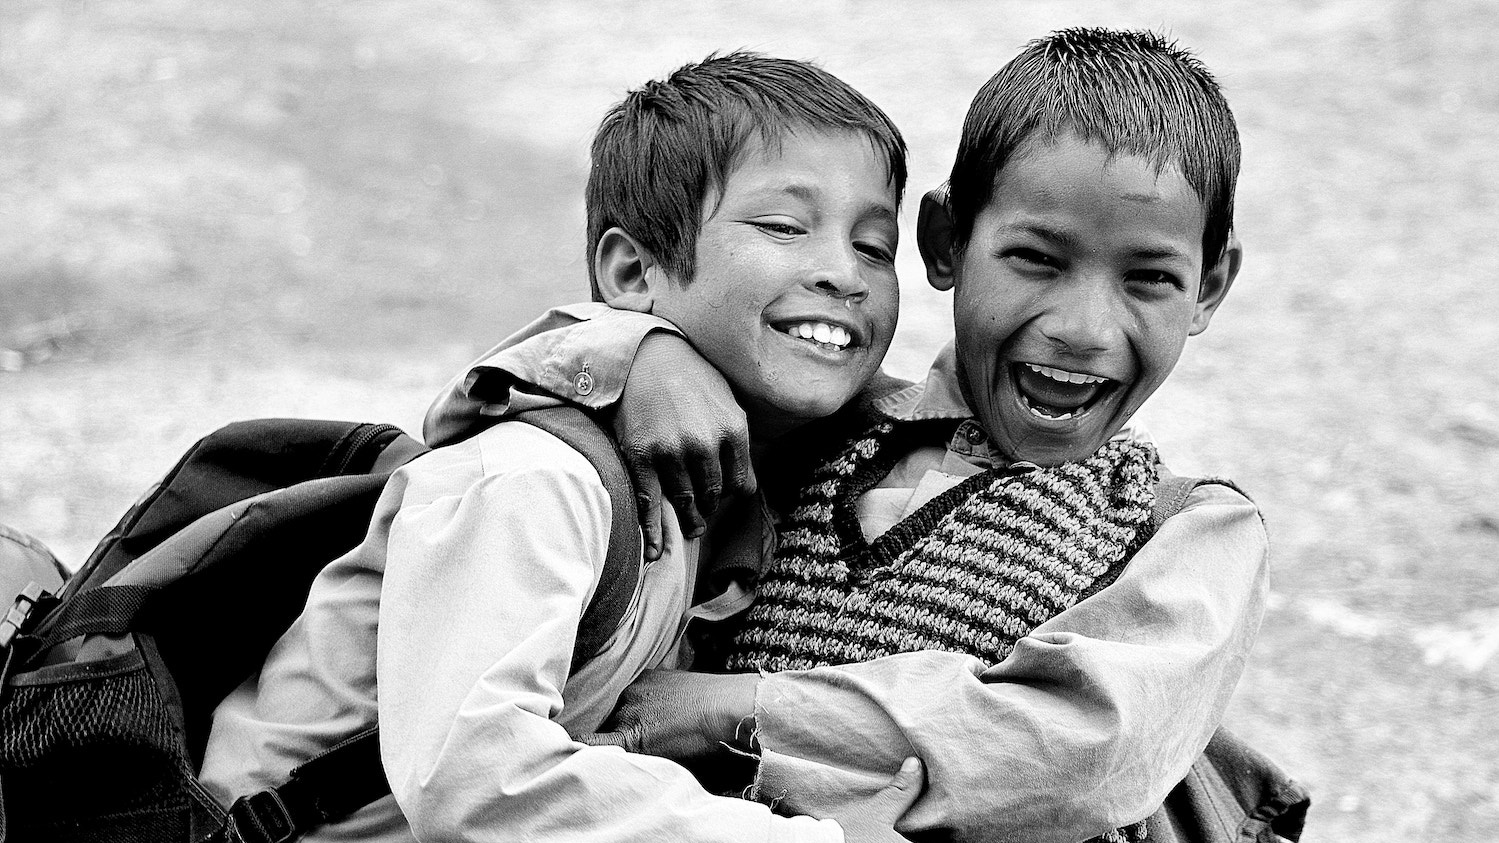 Two young friends laughing together